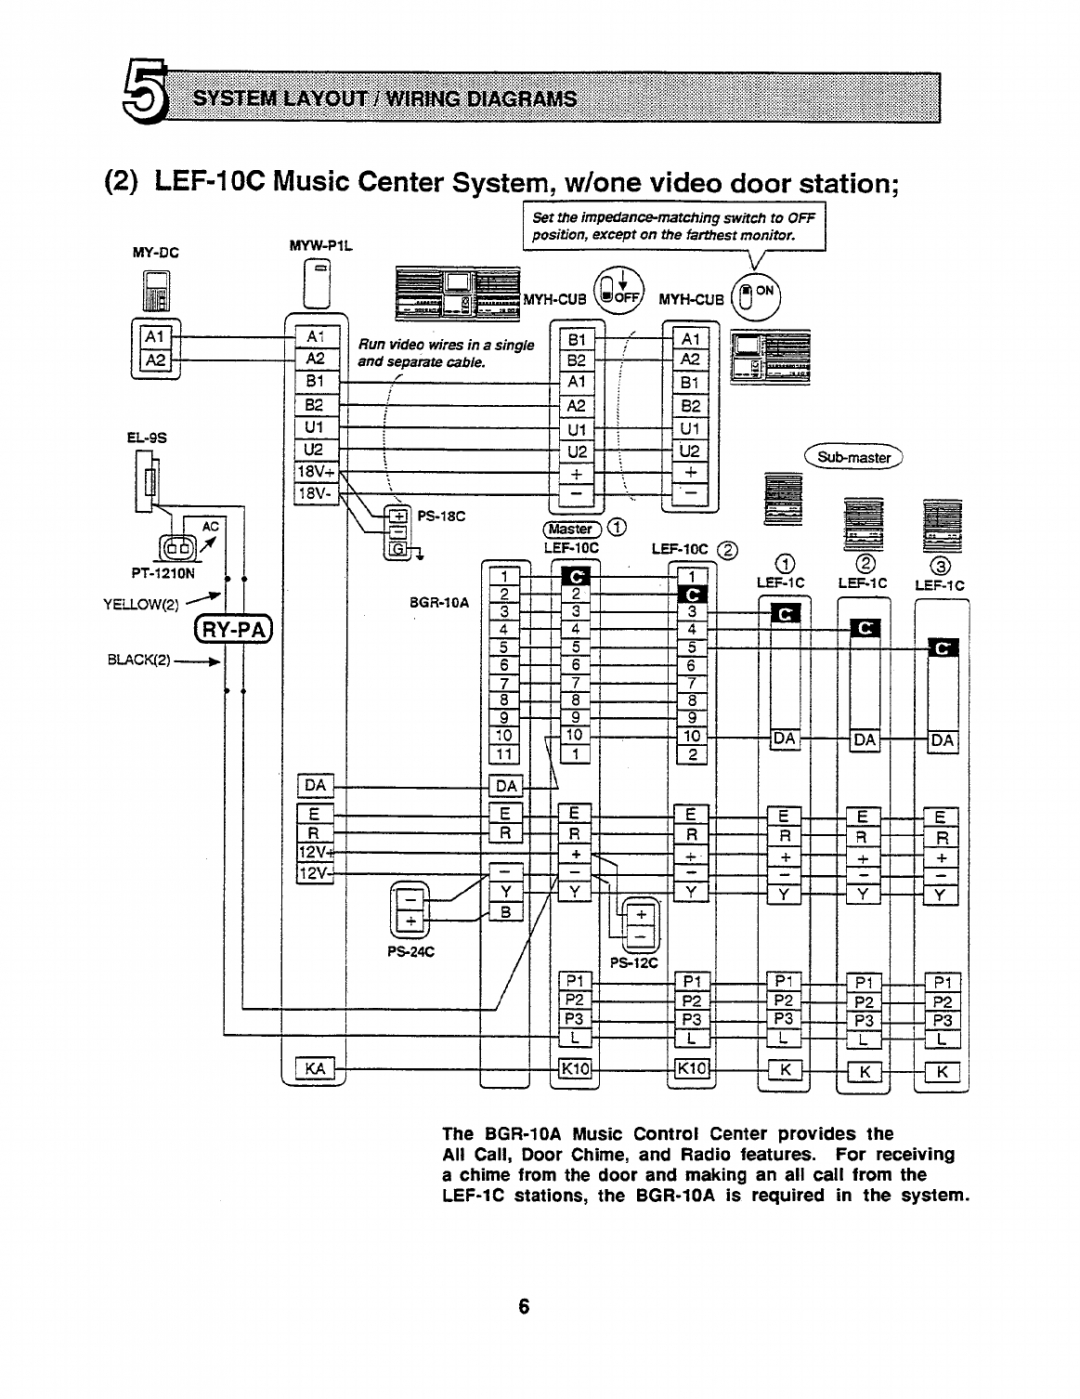 aiphone lef 10 wiring diagram Download-AiPhone Lef 10 Wiring Diagram Best Diagram Lee Dan Audio and Video Apartment Inter S 10-i